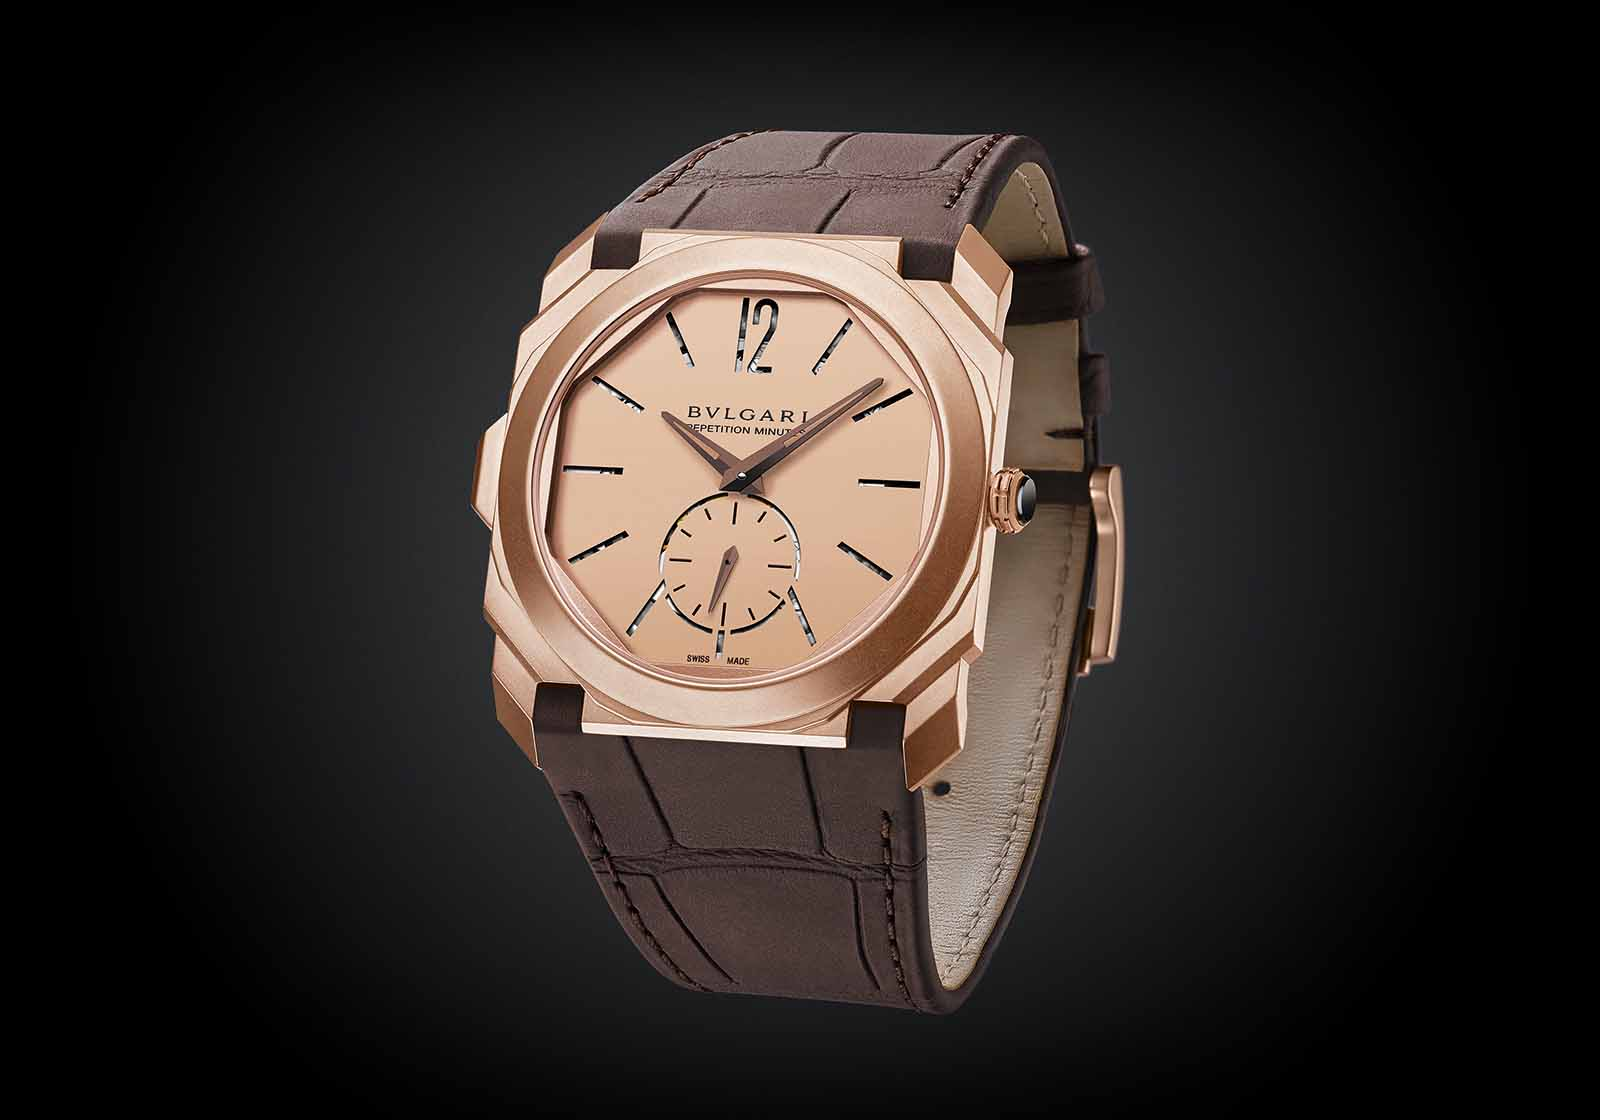 Bulgari Introduces the Octo Finissimo Minute Repeater in Rose Gold | SJX Watches